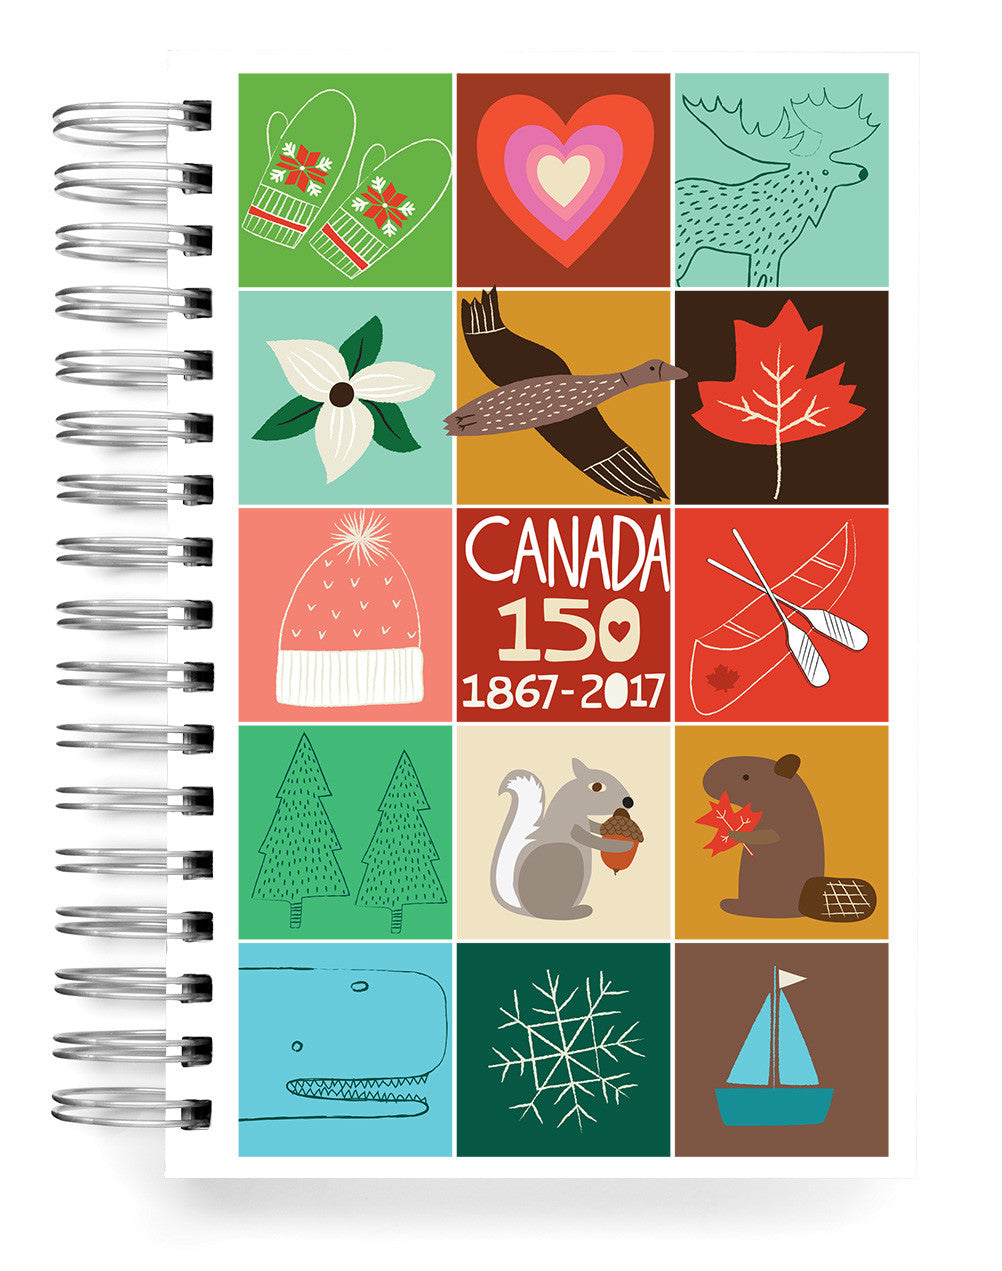 Canada squares 150 Jumbo Journal